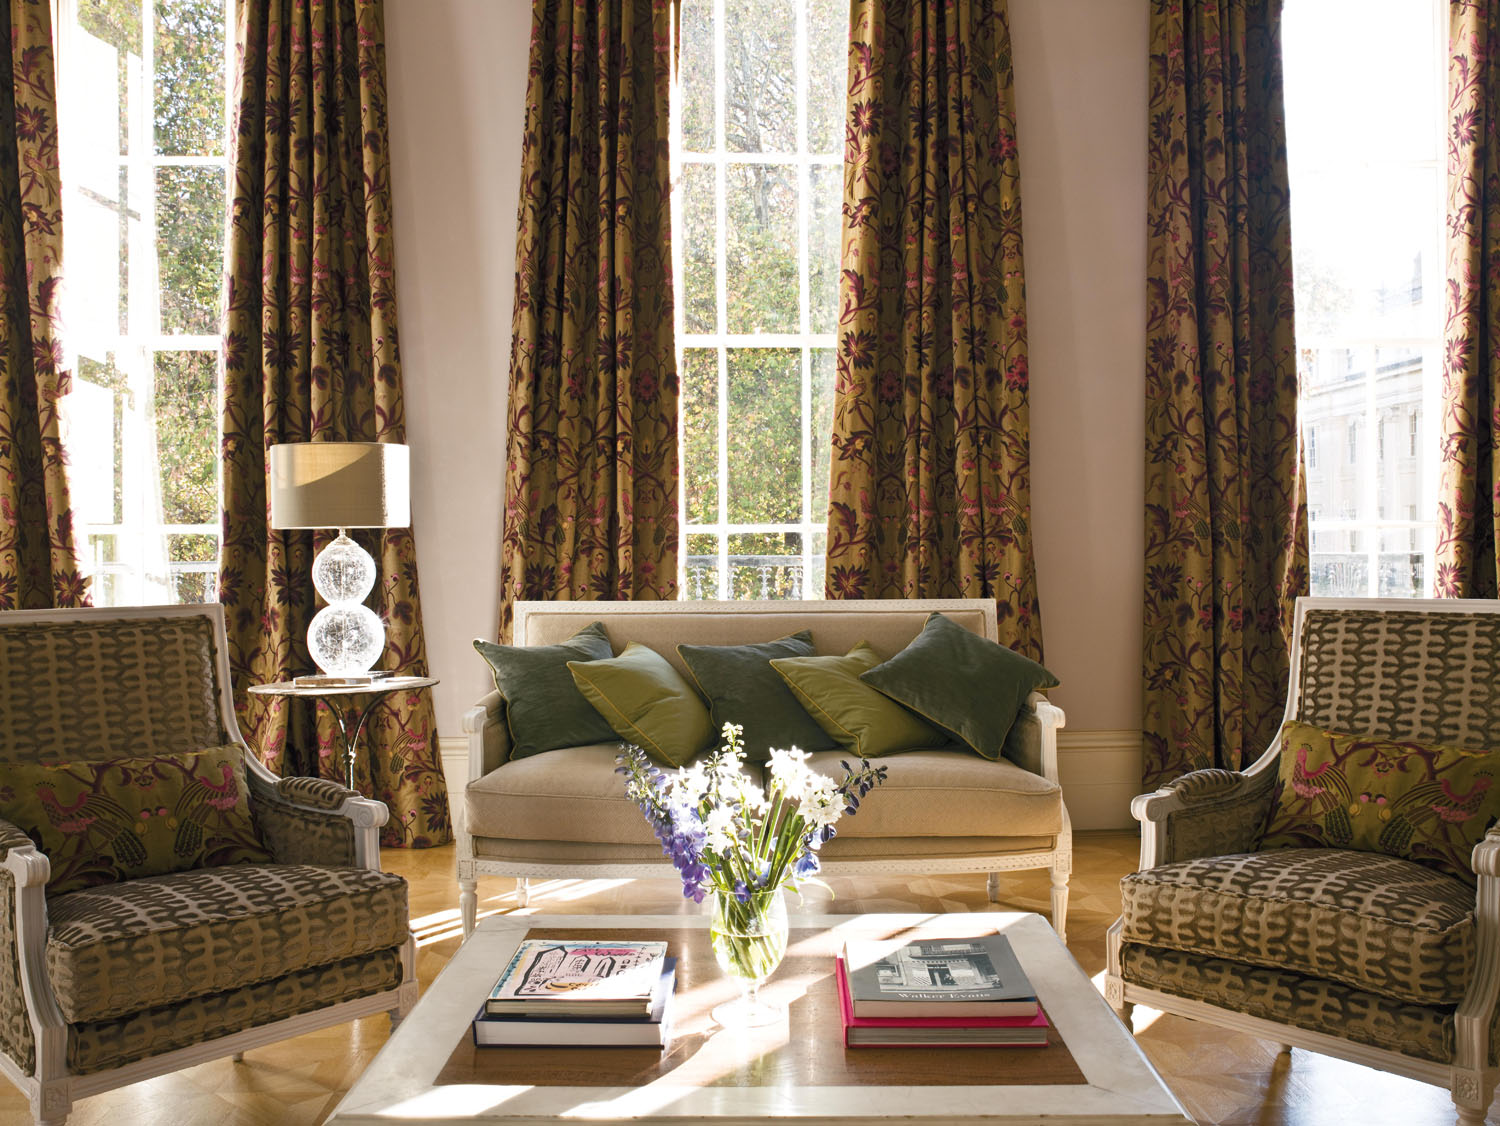 Large Drawing Room with Jacquard Curtains